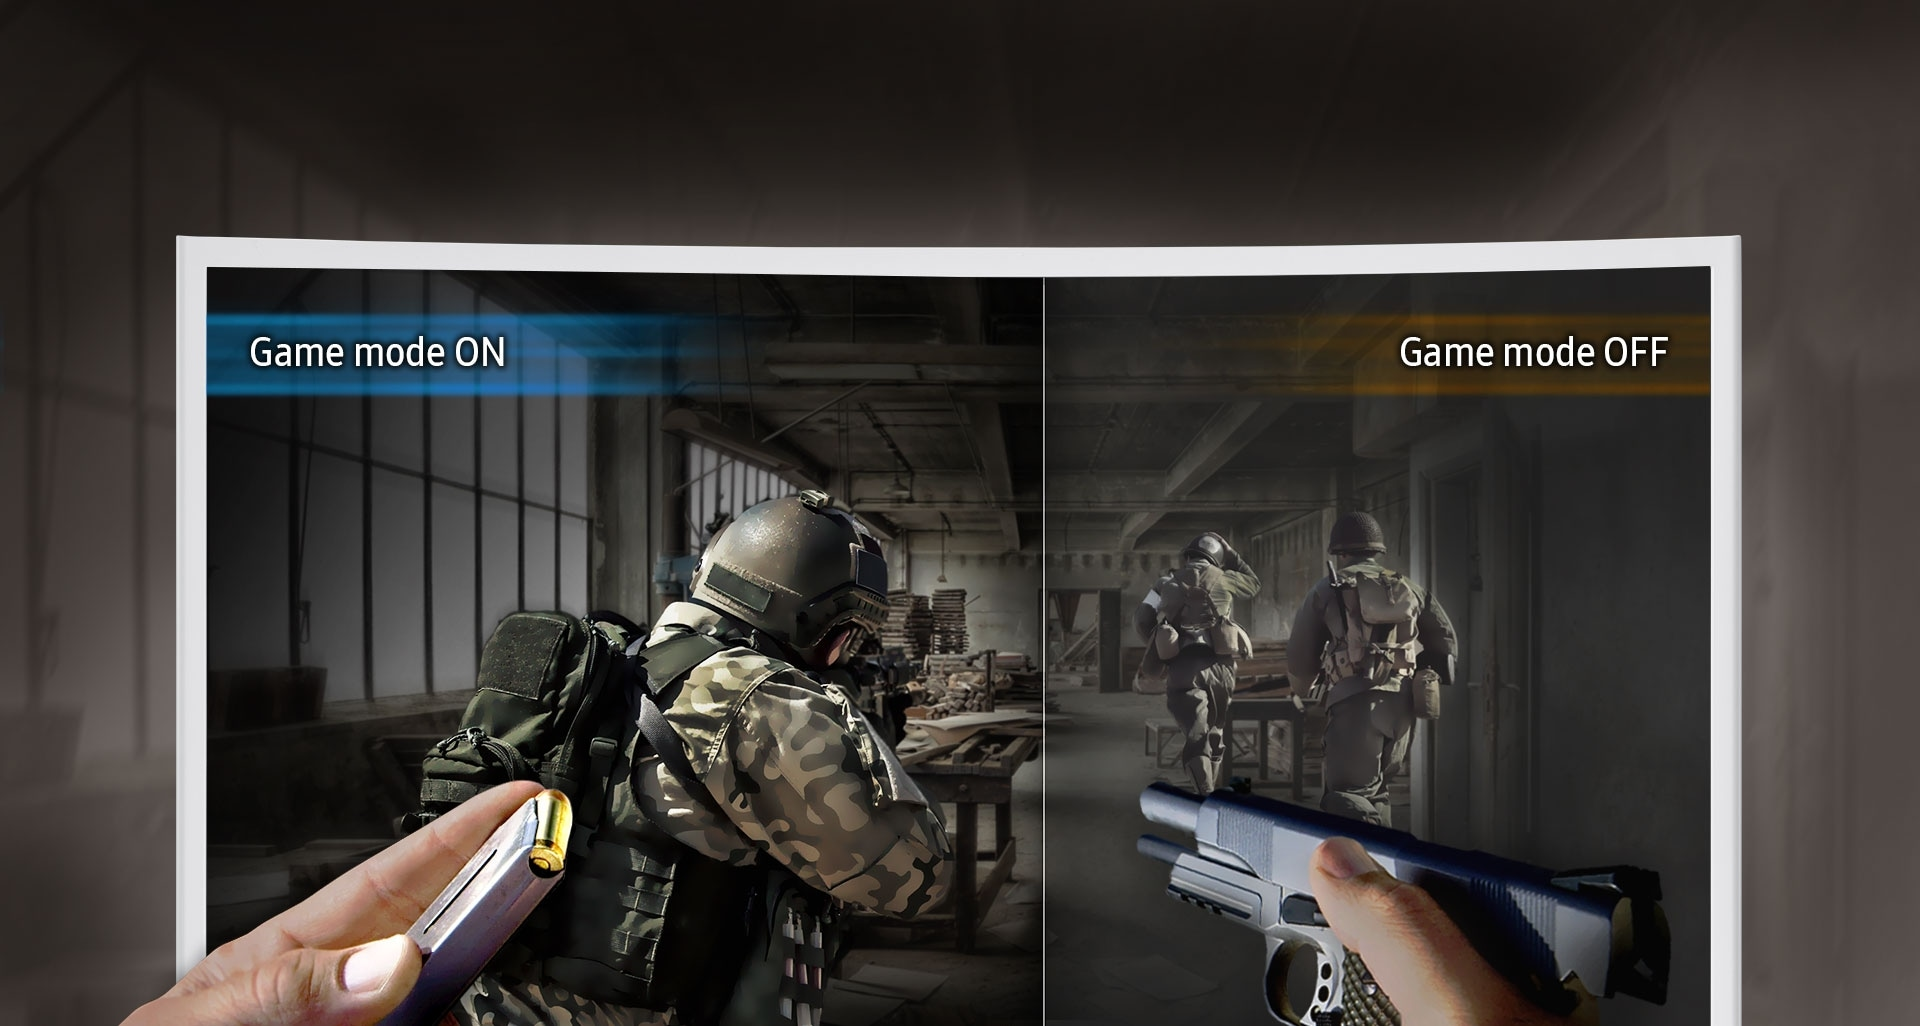 Enhanced gaming experience with Game mode | Samsung NZ